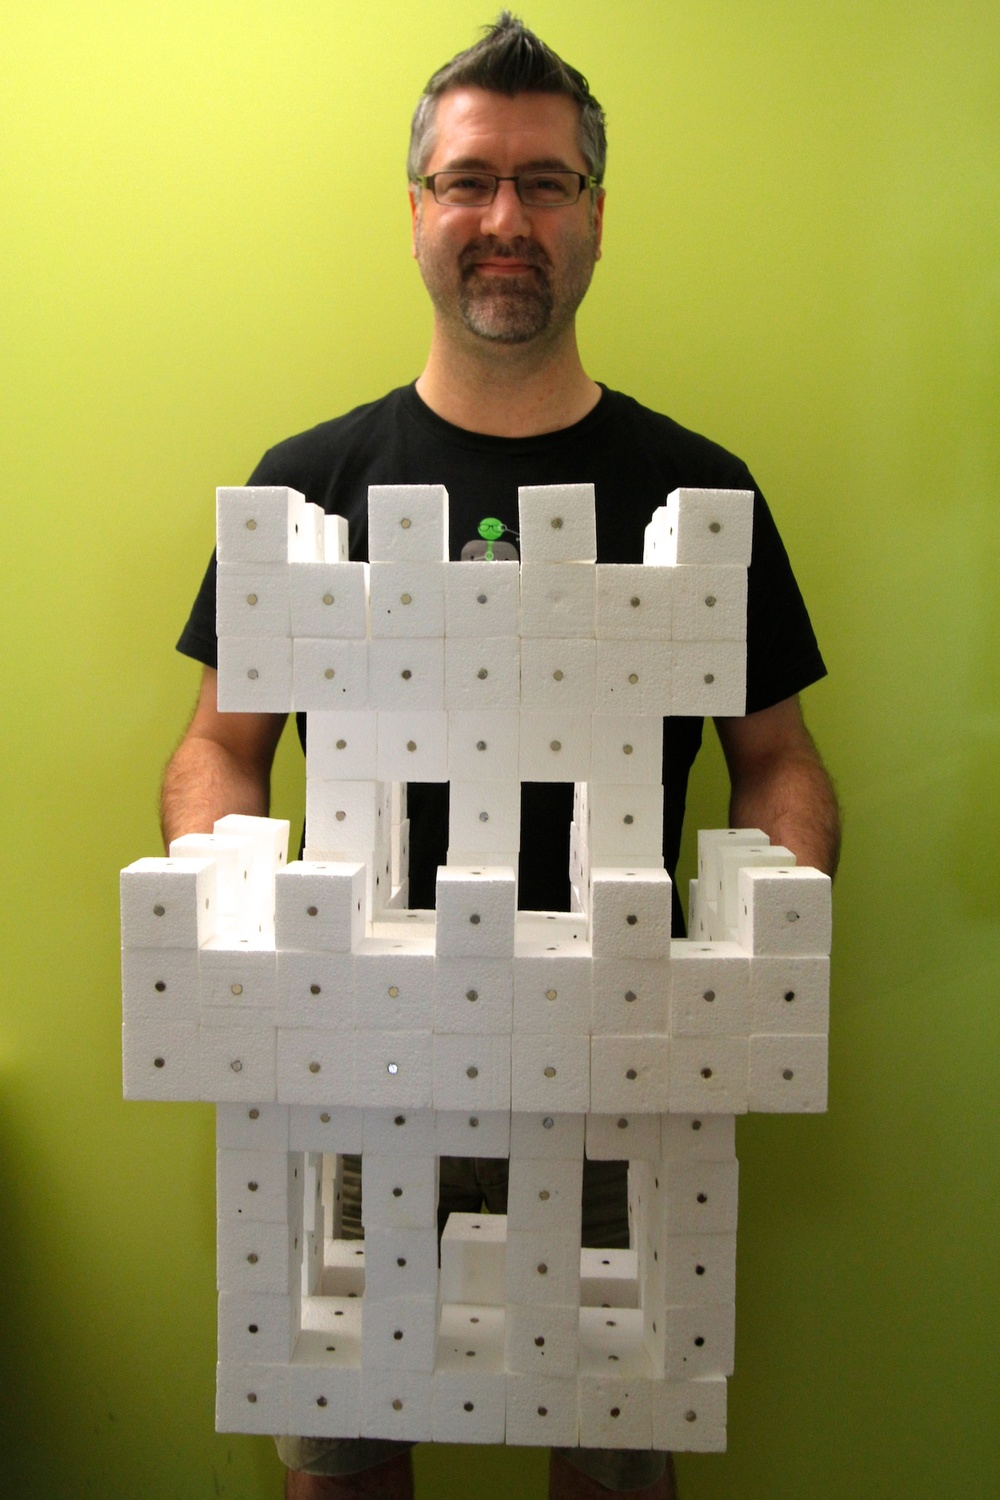 @nickf with his castle